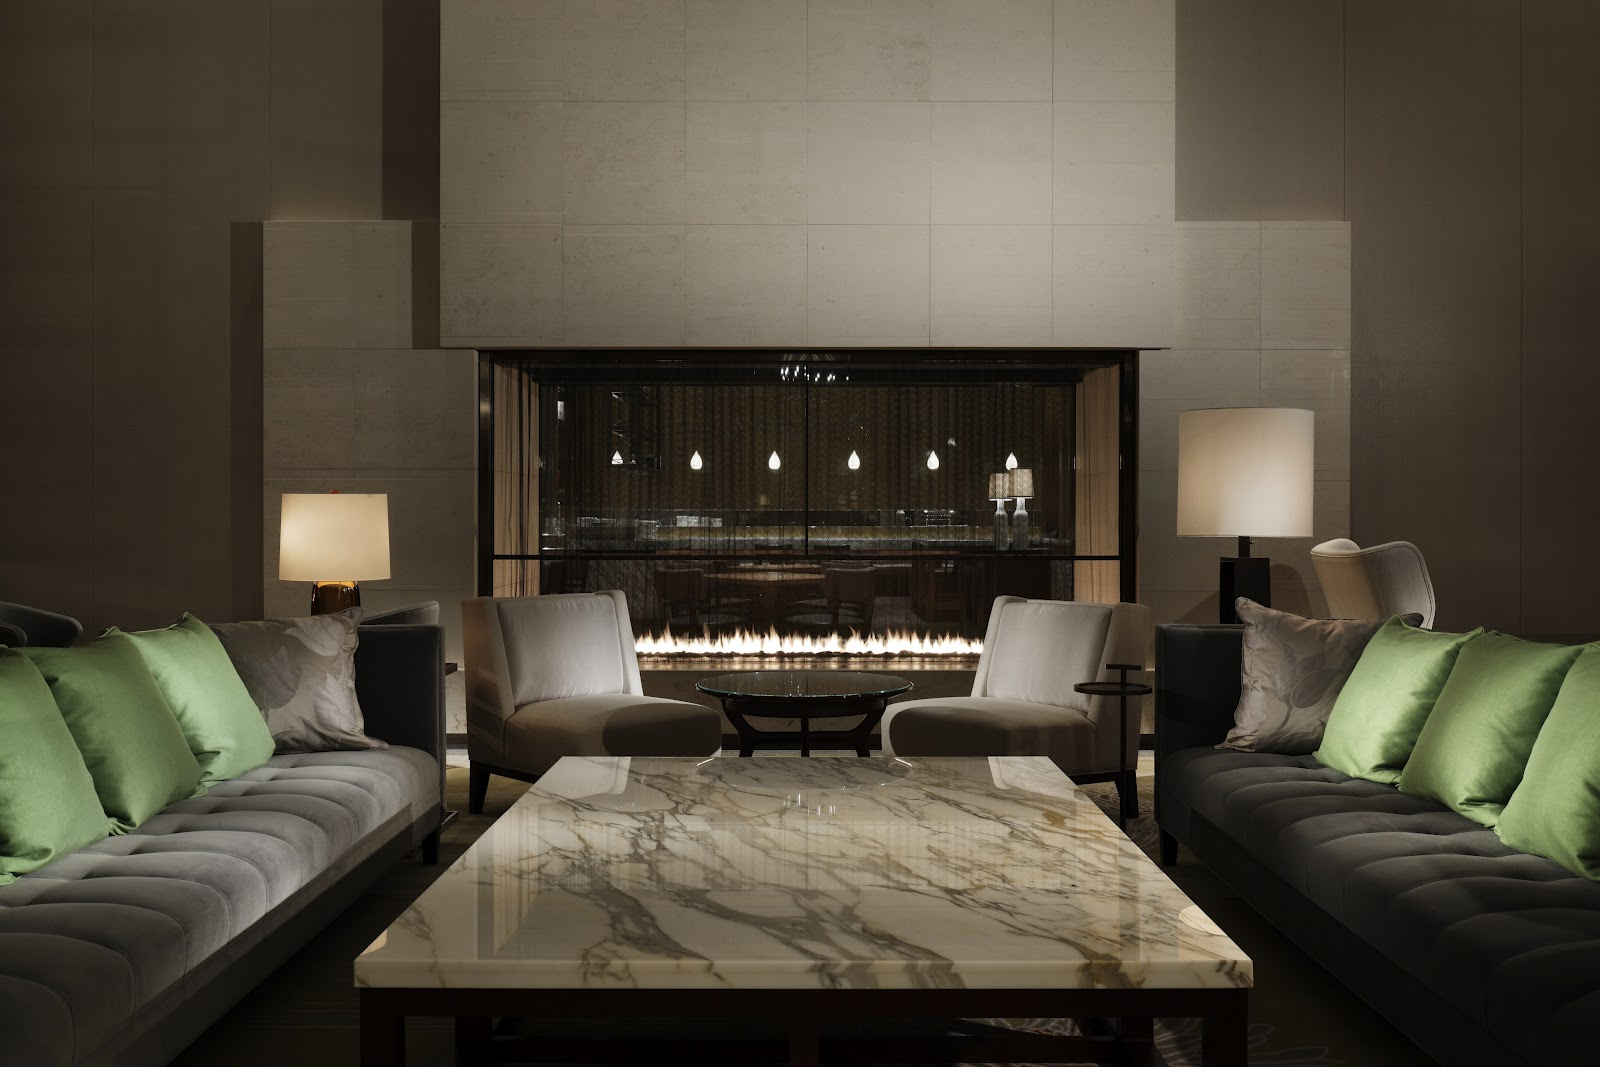 Palace Hotel Tokyo Shoots For The Stars With Michelin Star Chefs  Evian Spa  Imperial Palace